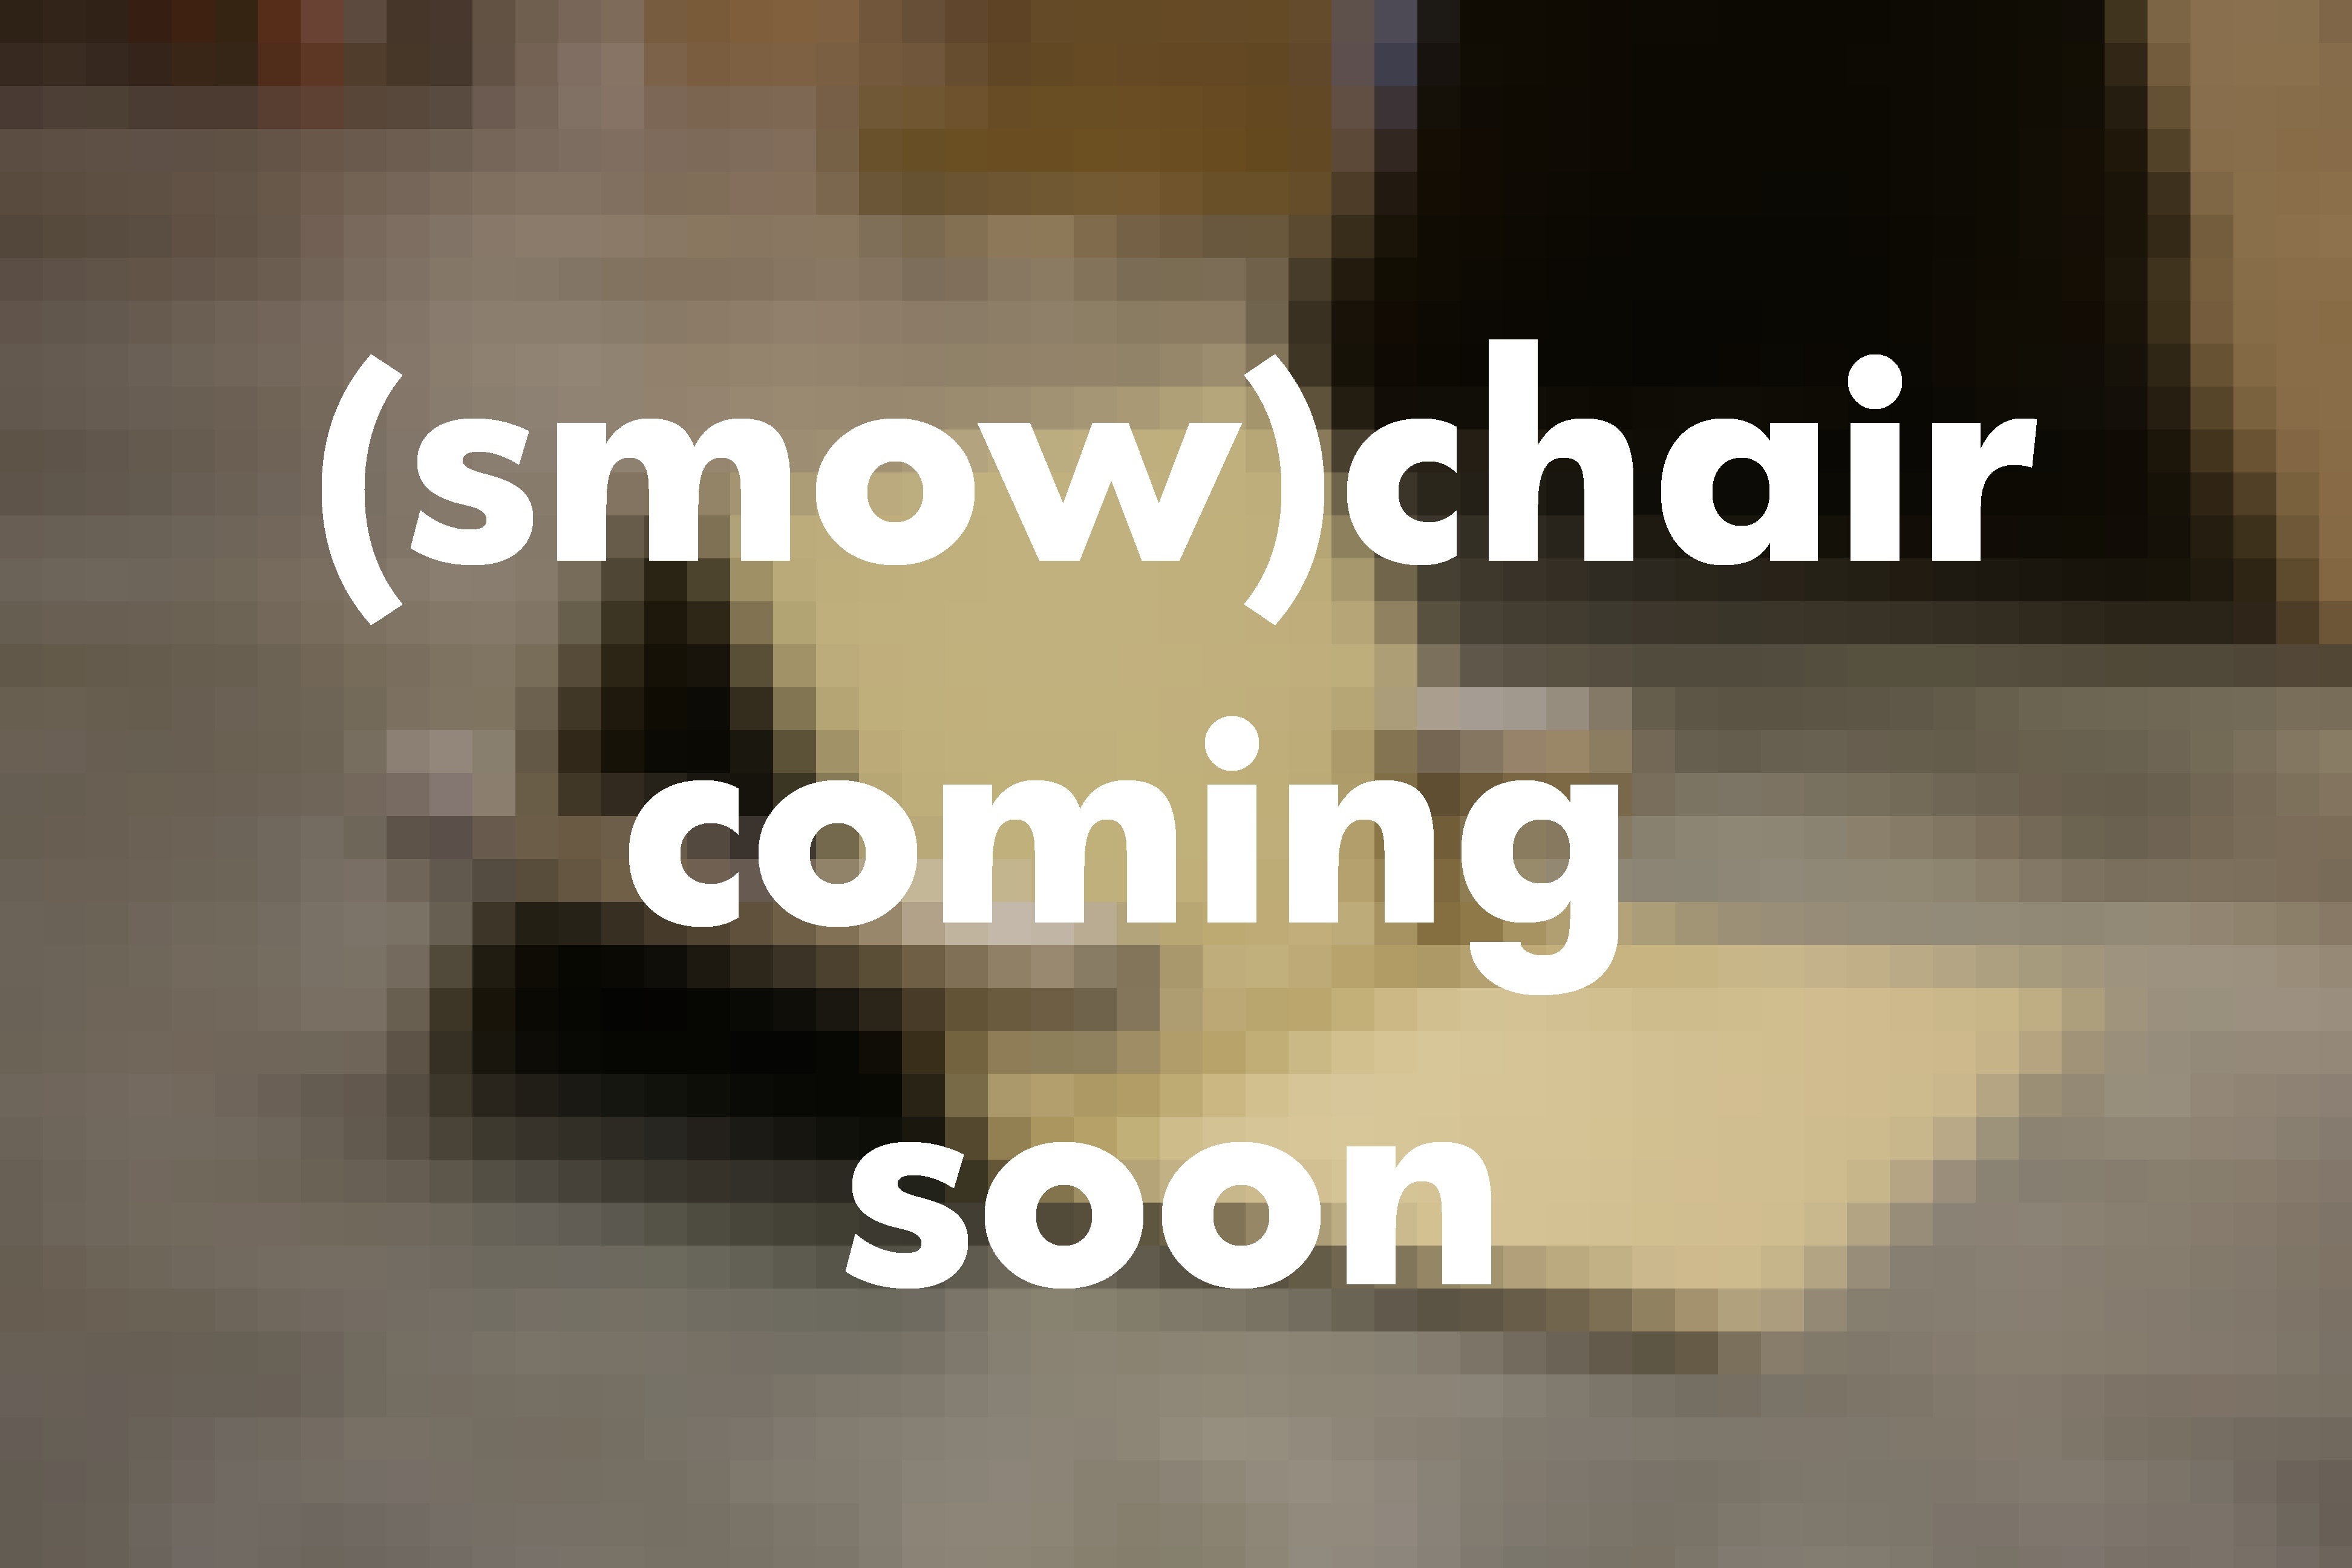 smow chair coming soon